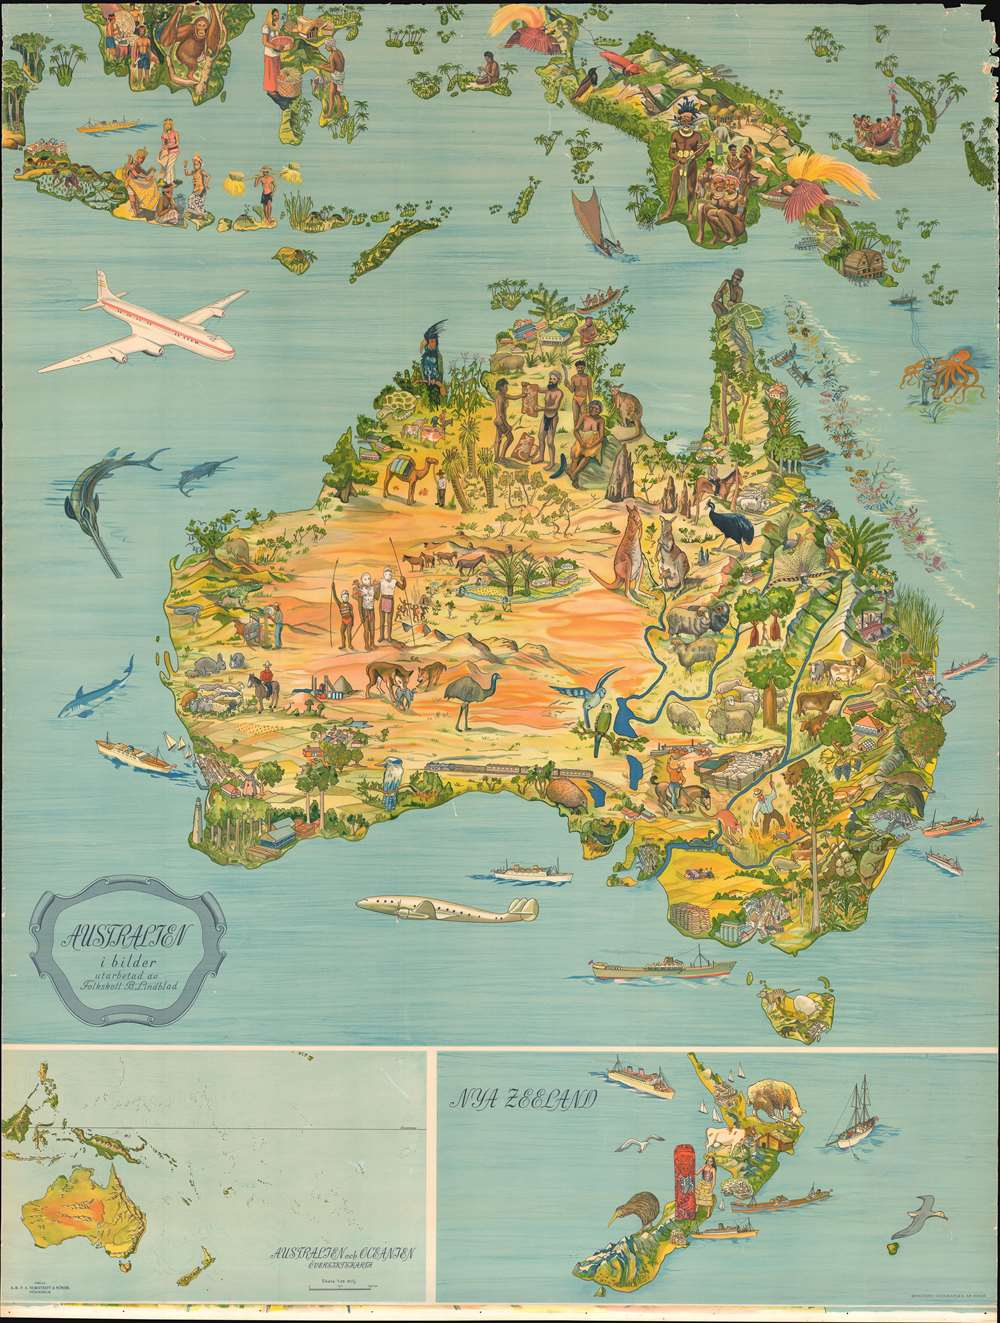 Map Of Australia New Zealand.Details About 1947 Lindblad Pictorial Map Of Australia New Zealand And Indonesia